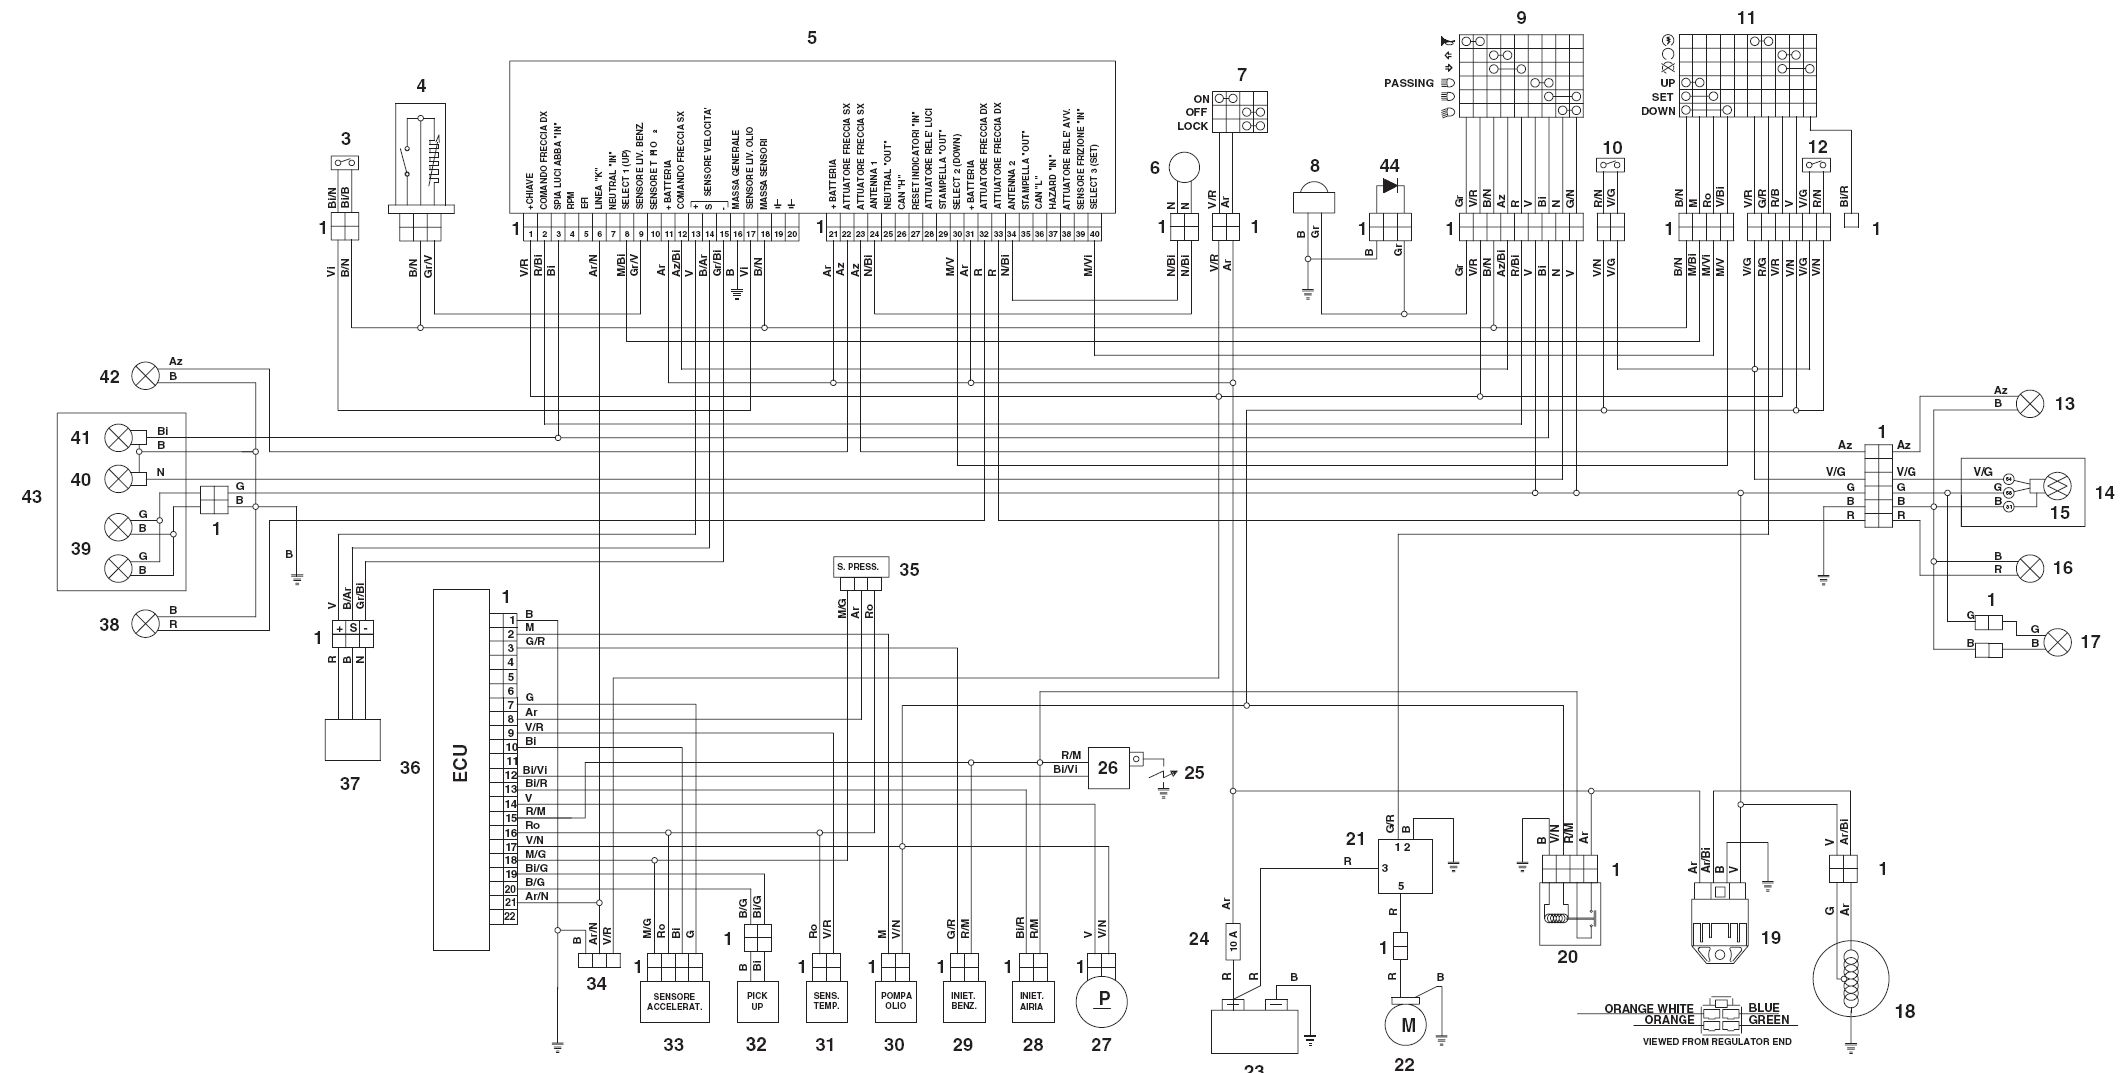 High Resolution Copy Of The Wiring Diagram